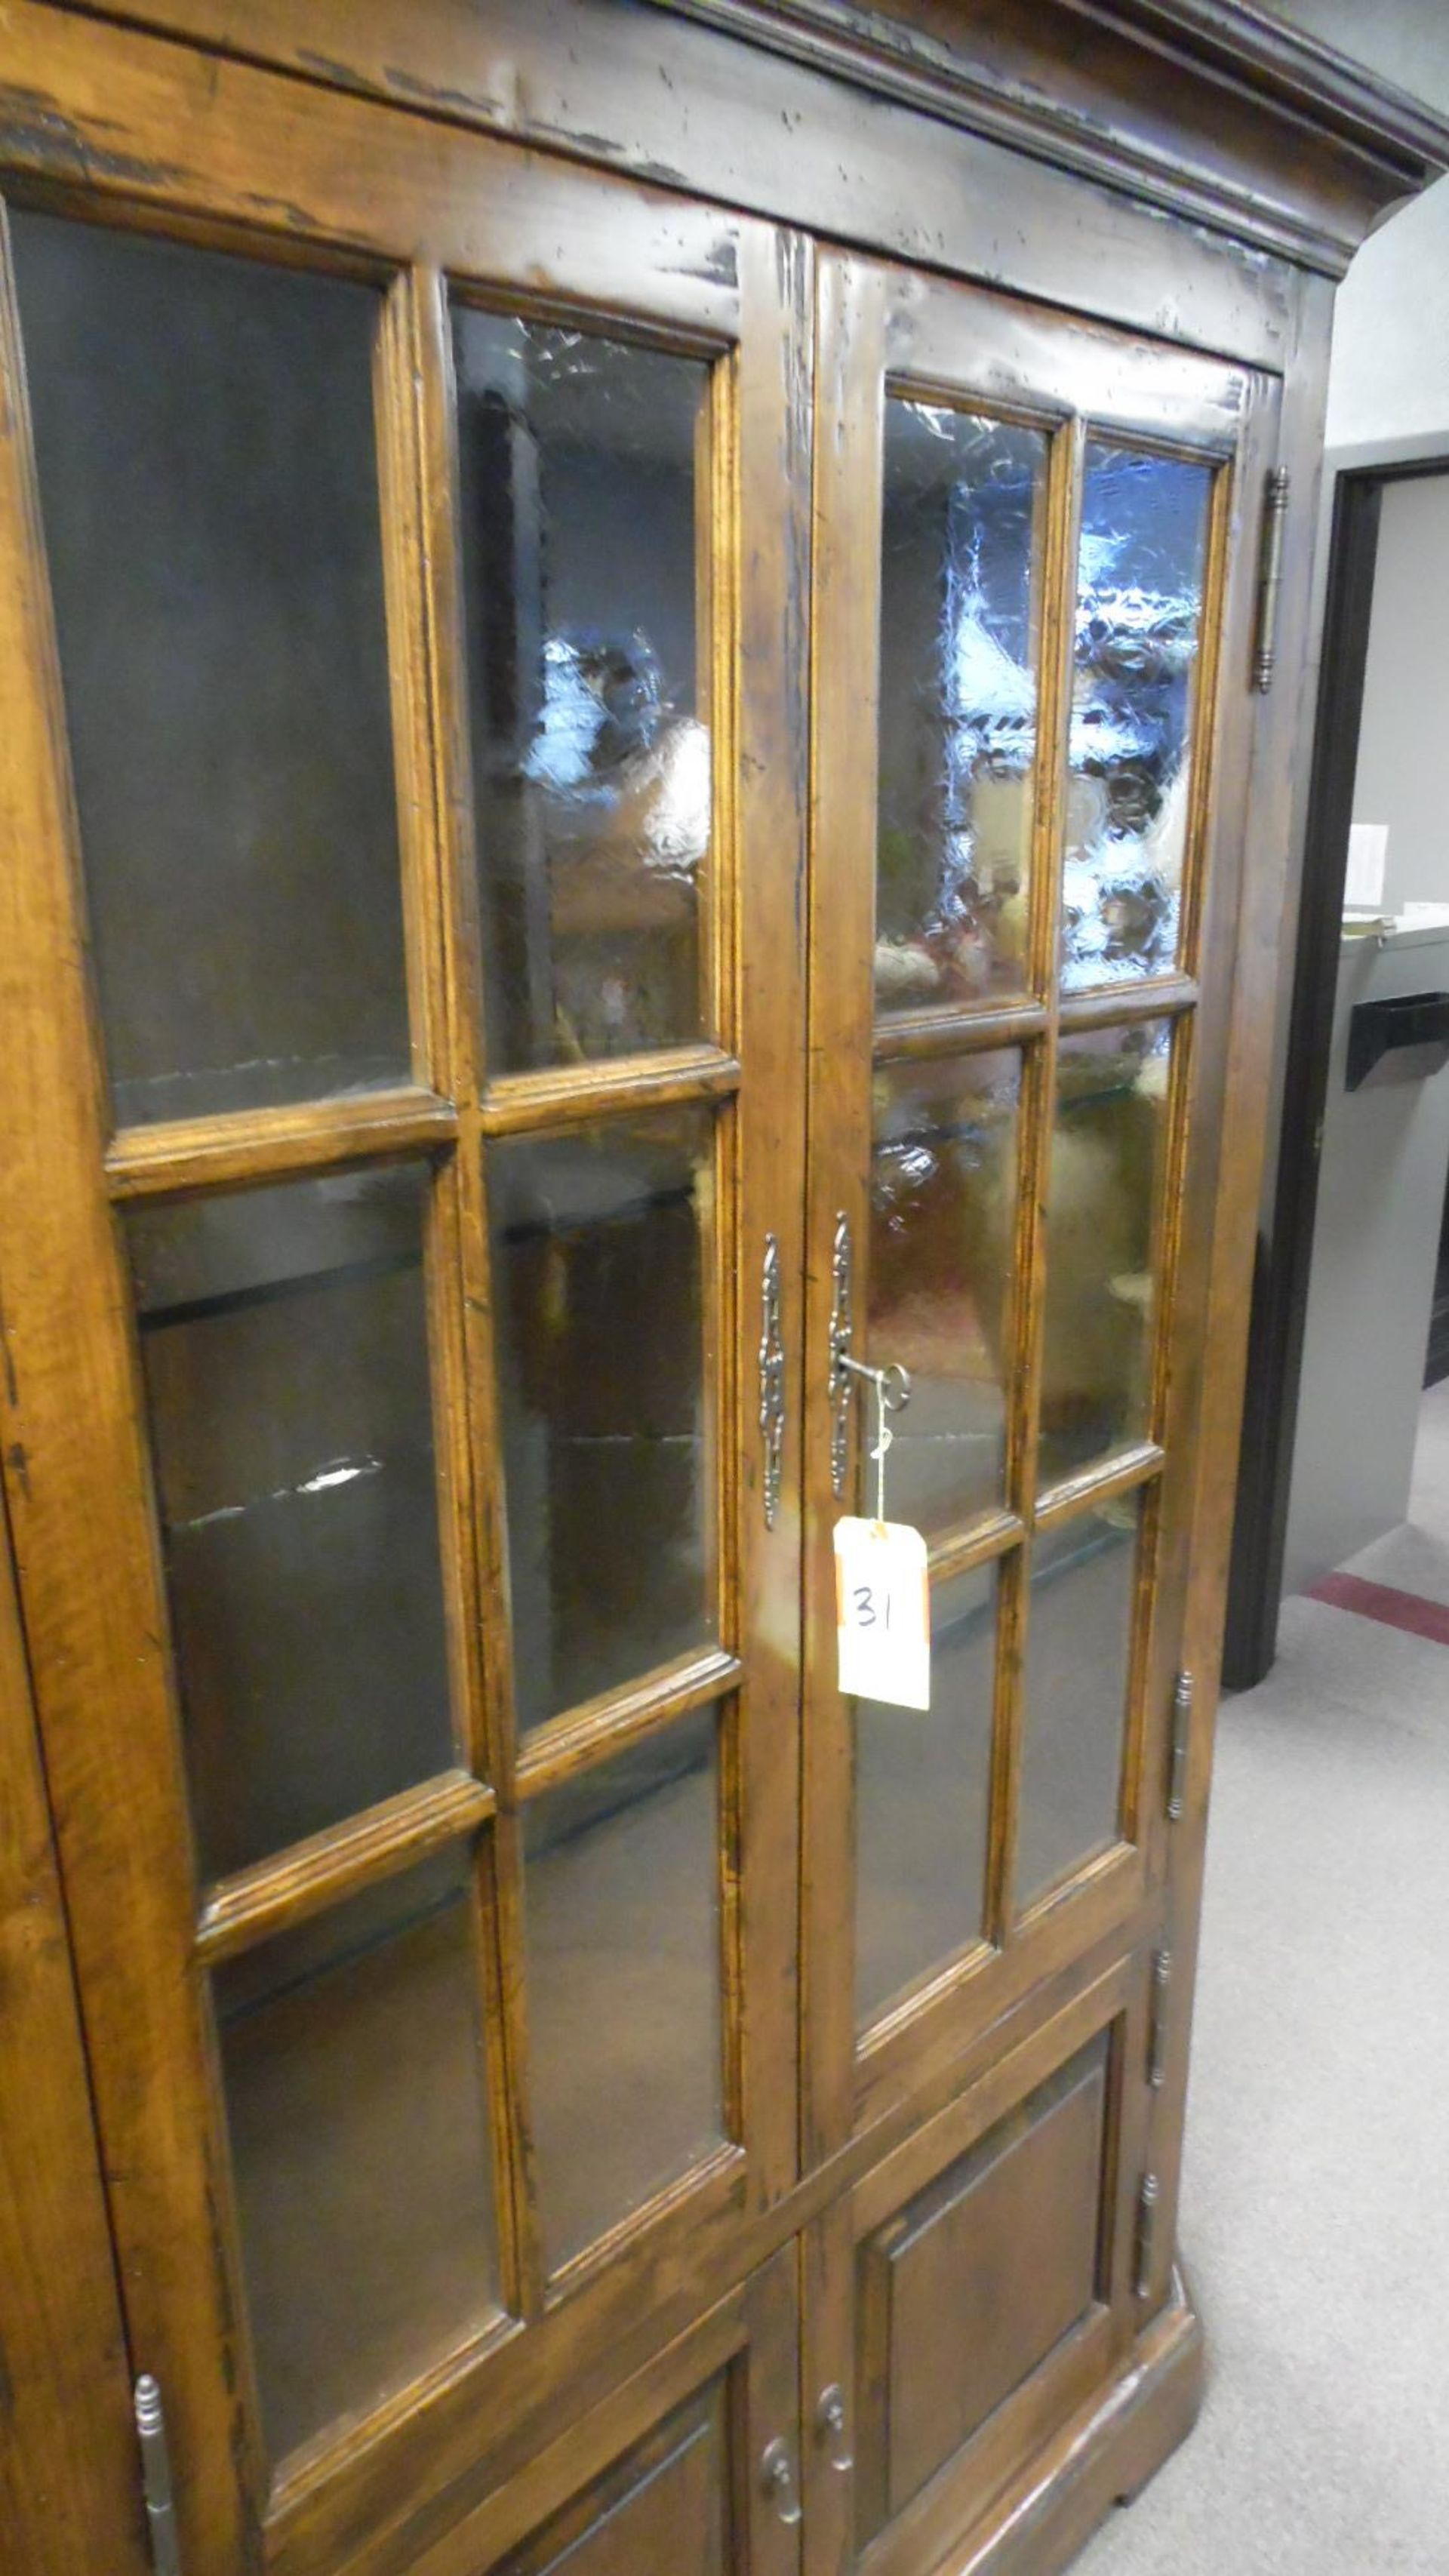 Lot 31 - RUSTIC CABINET w/ GLASS SHELVES